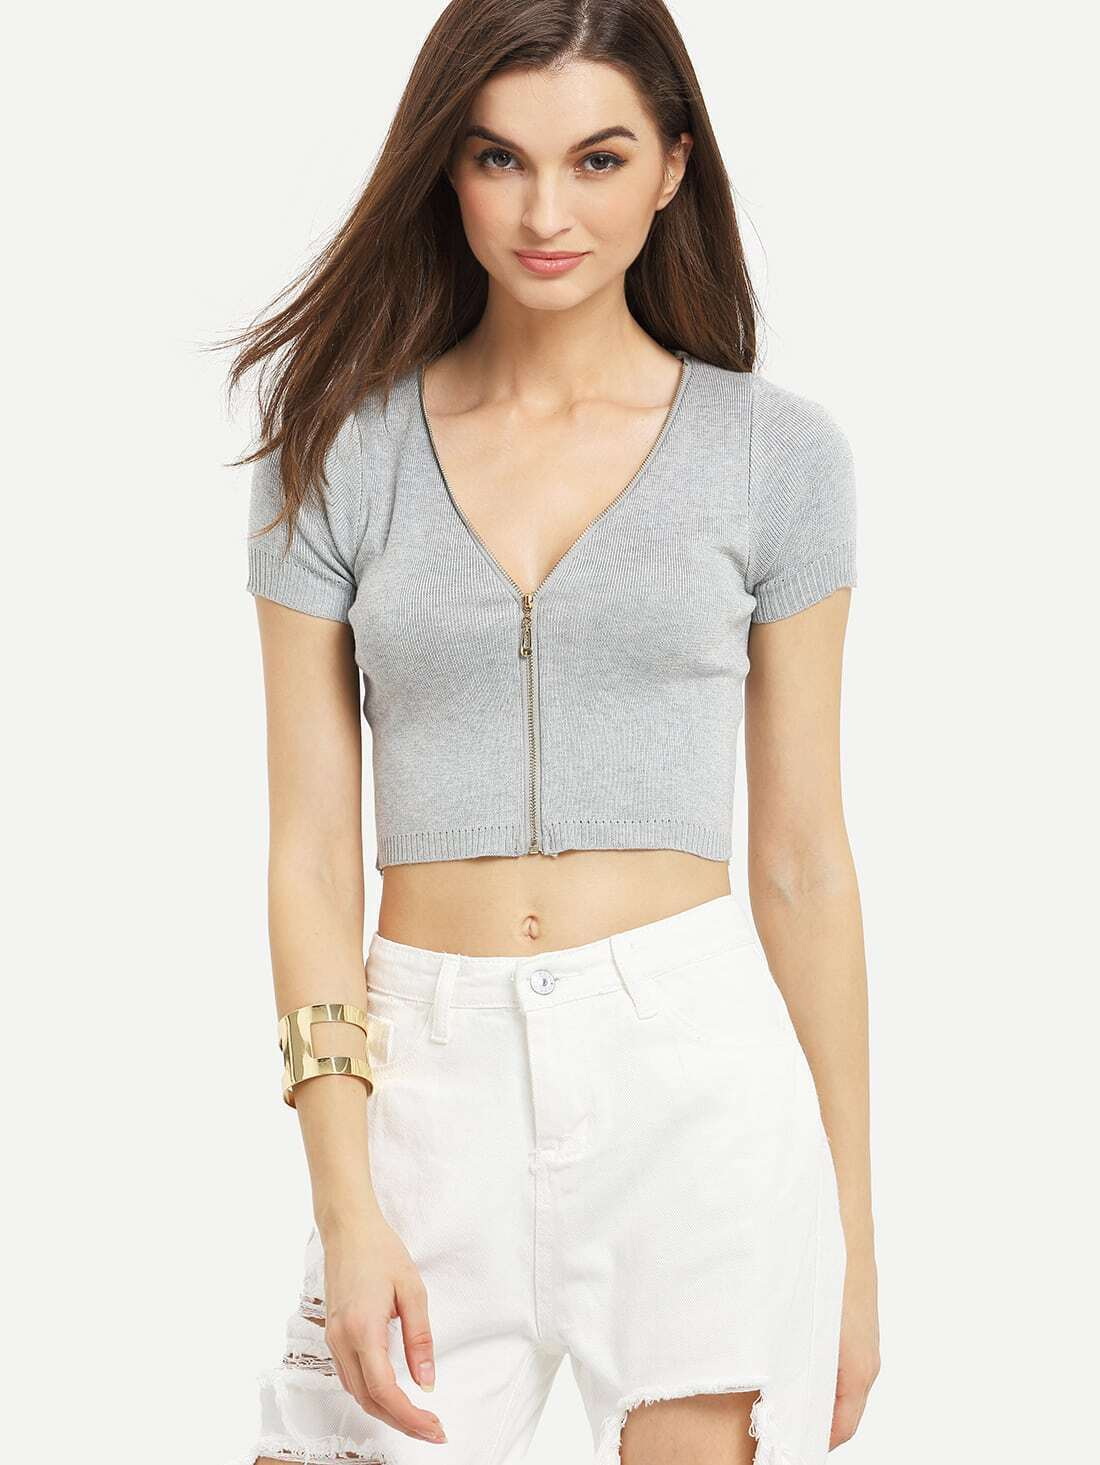 Zip Front Ribbed Knit Crop Top - Grey sweater160511152